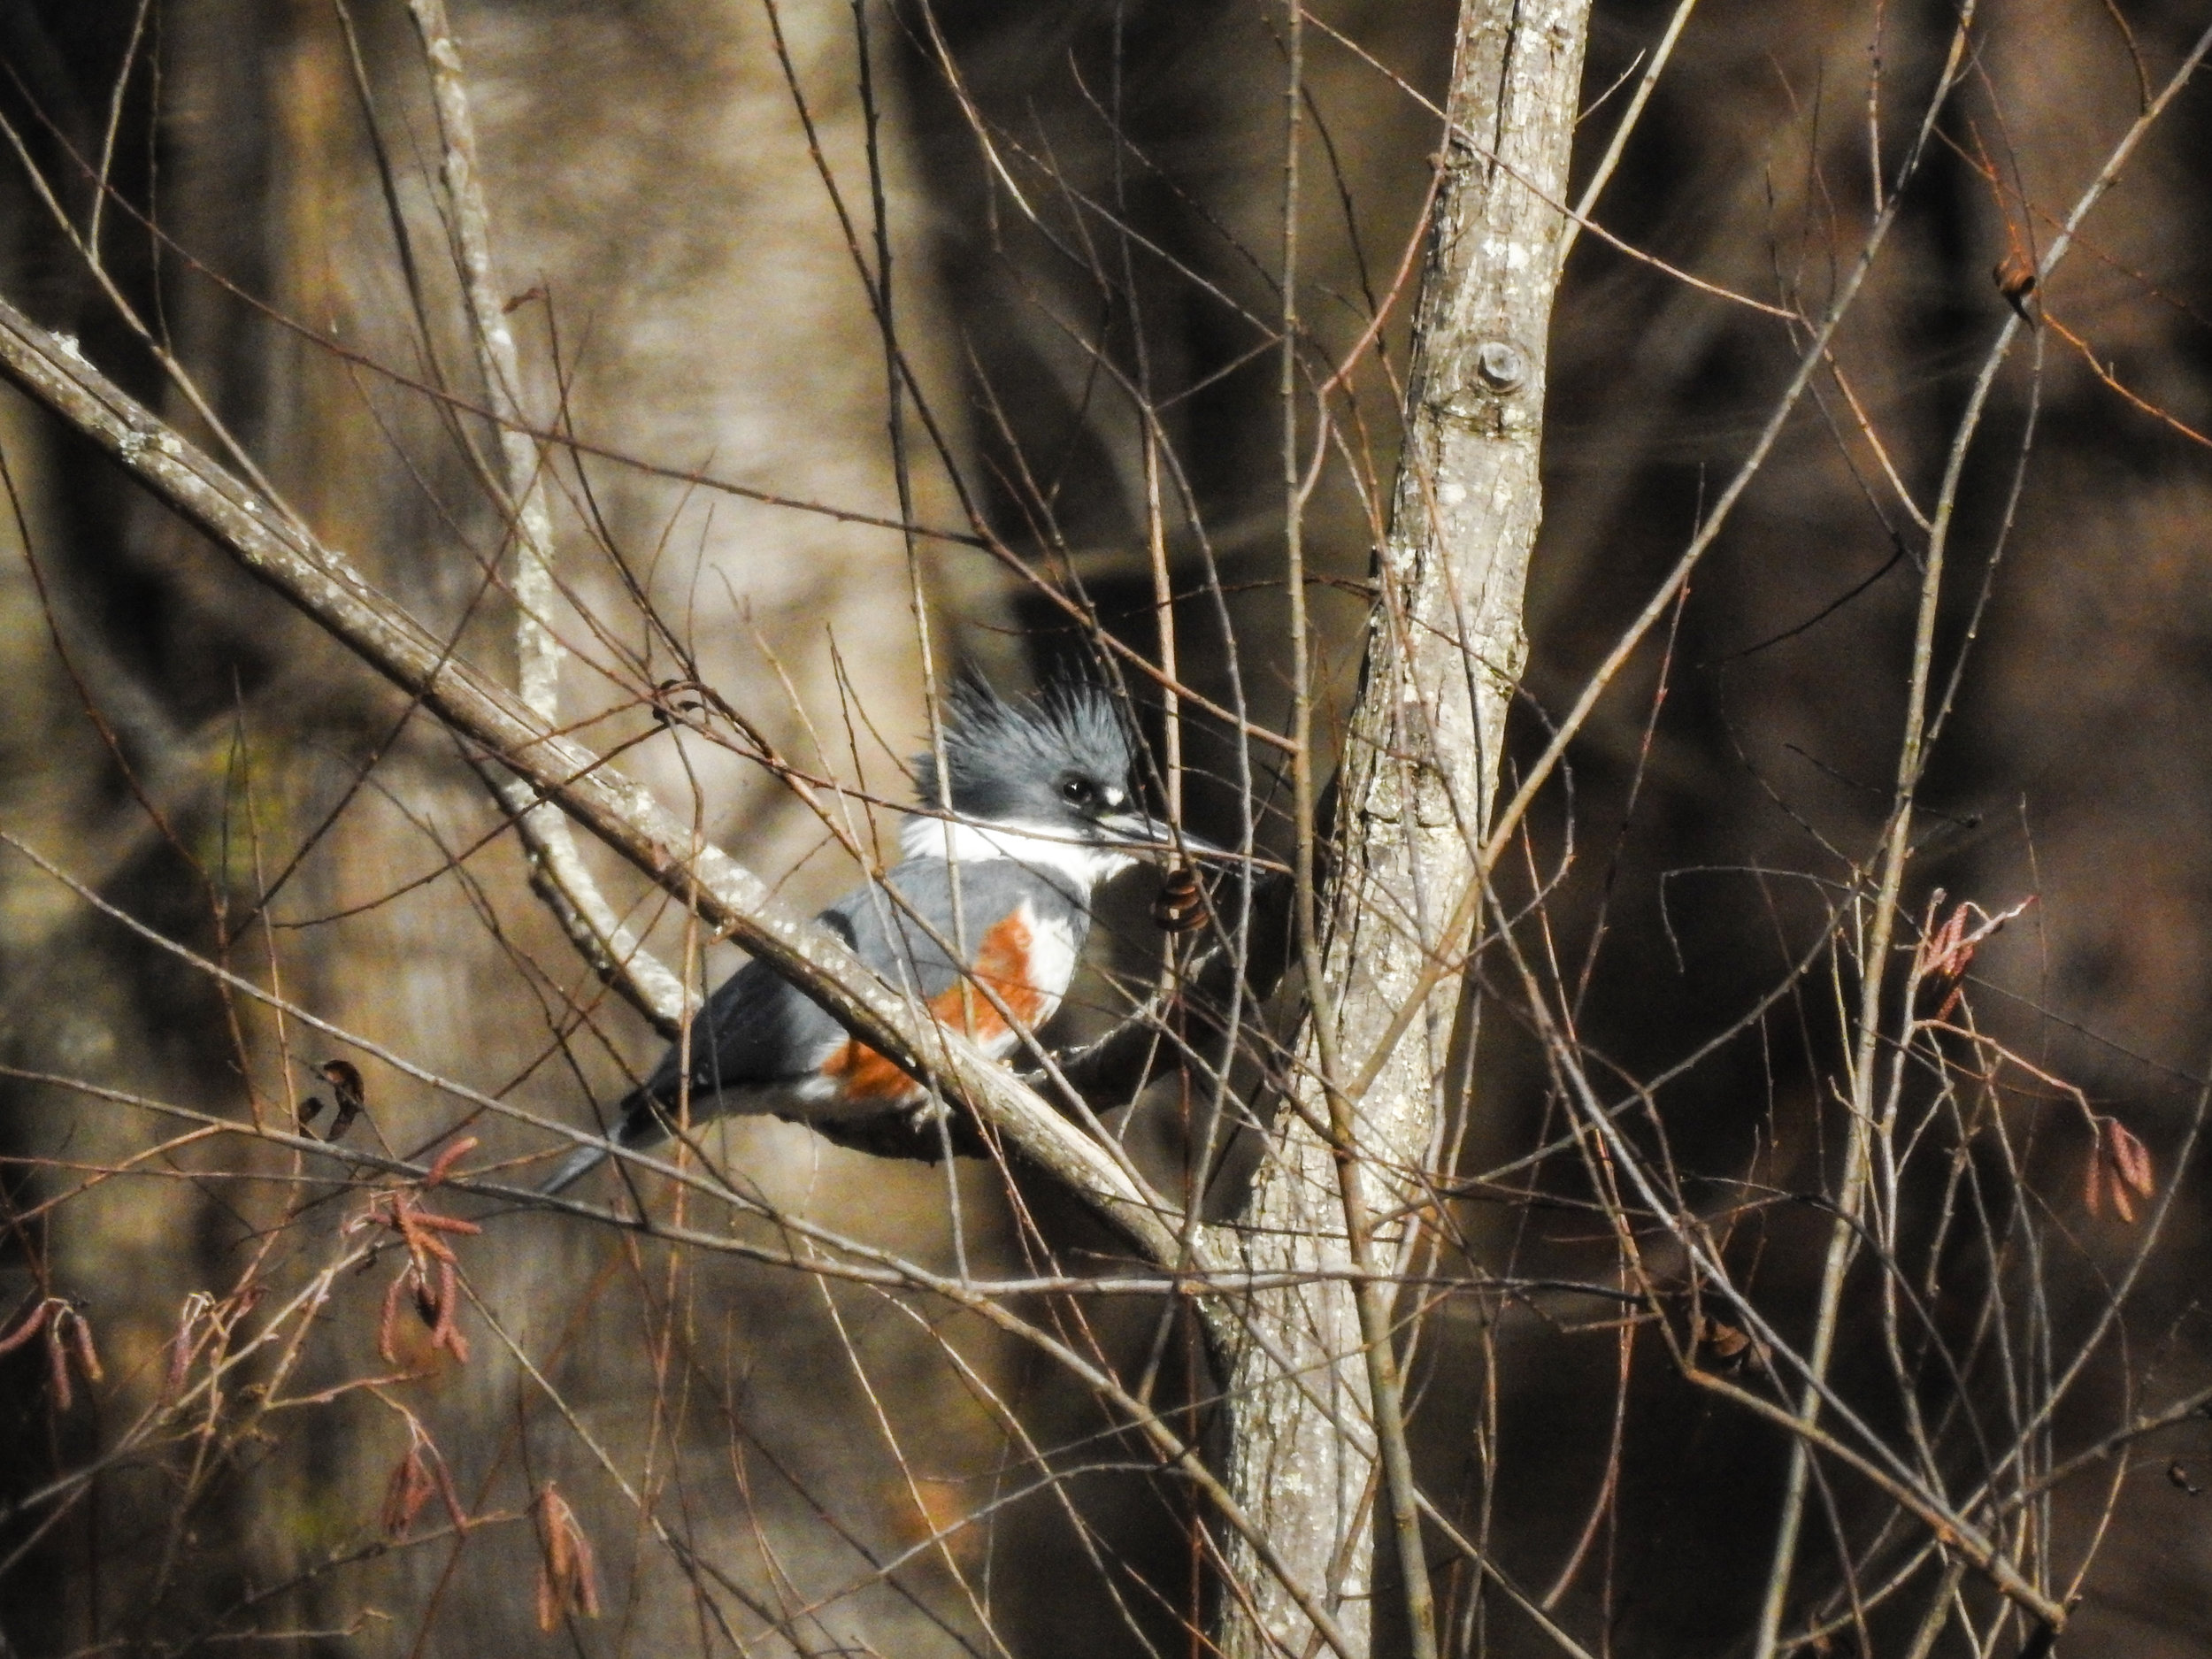 Belted Kingfisher, December 16, 2017